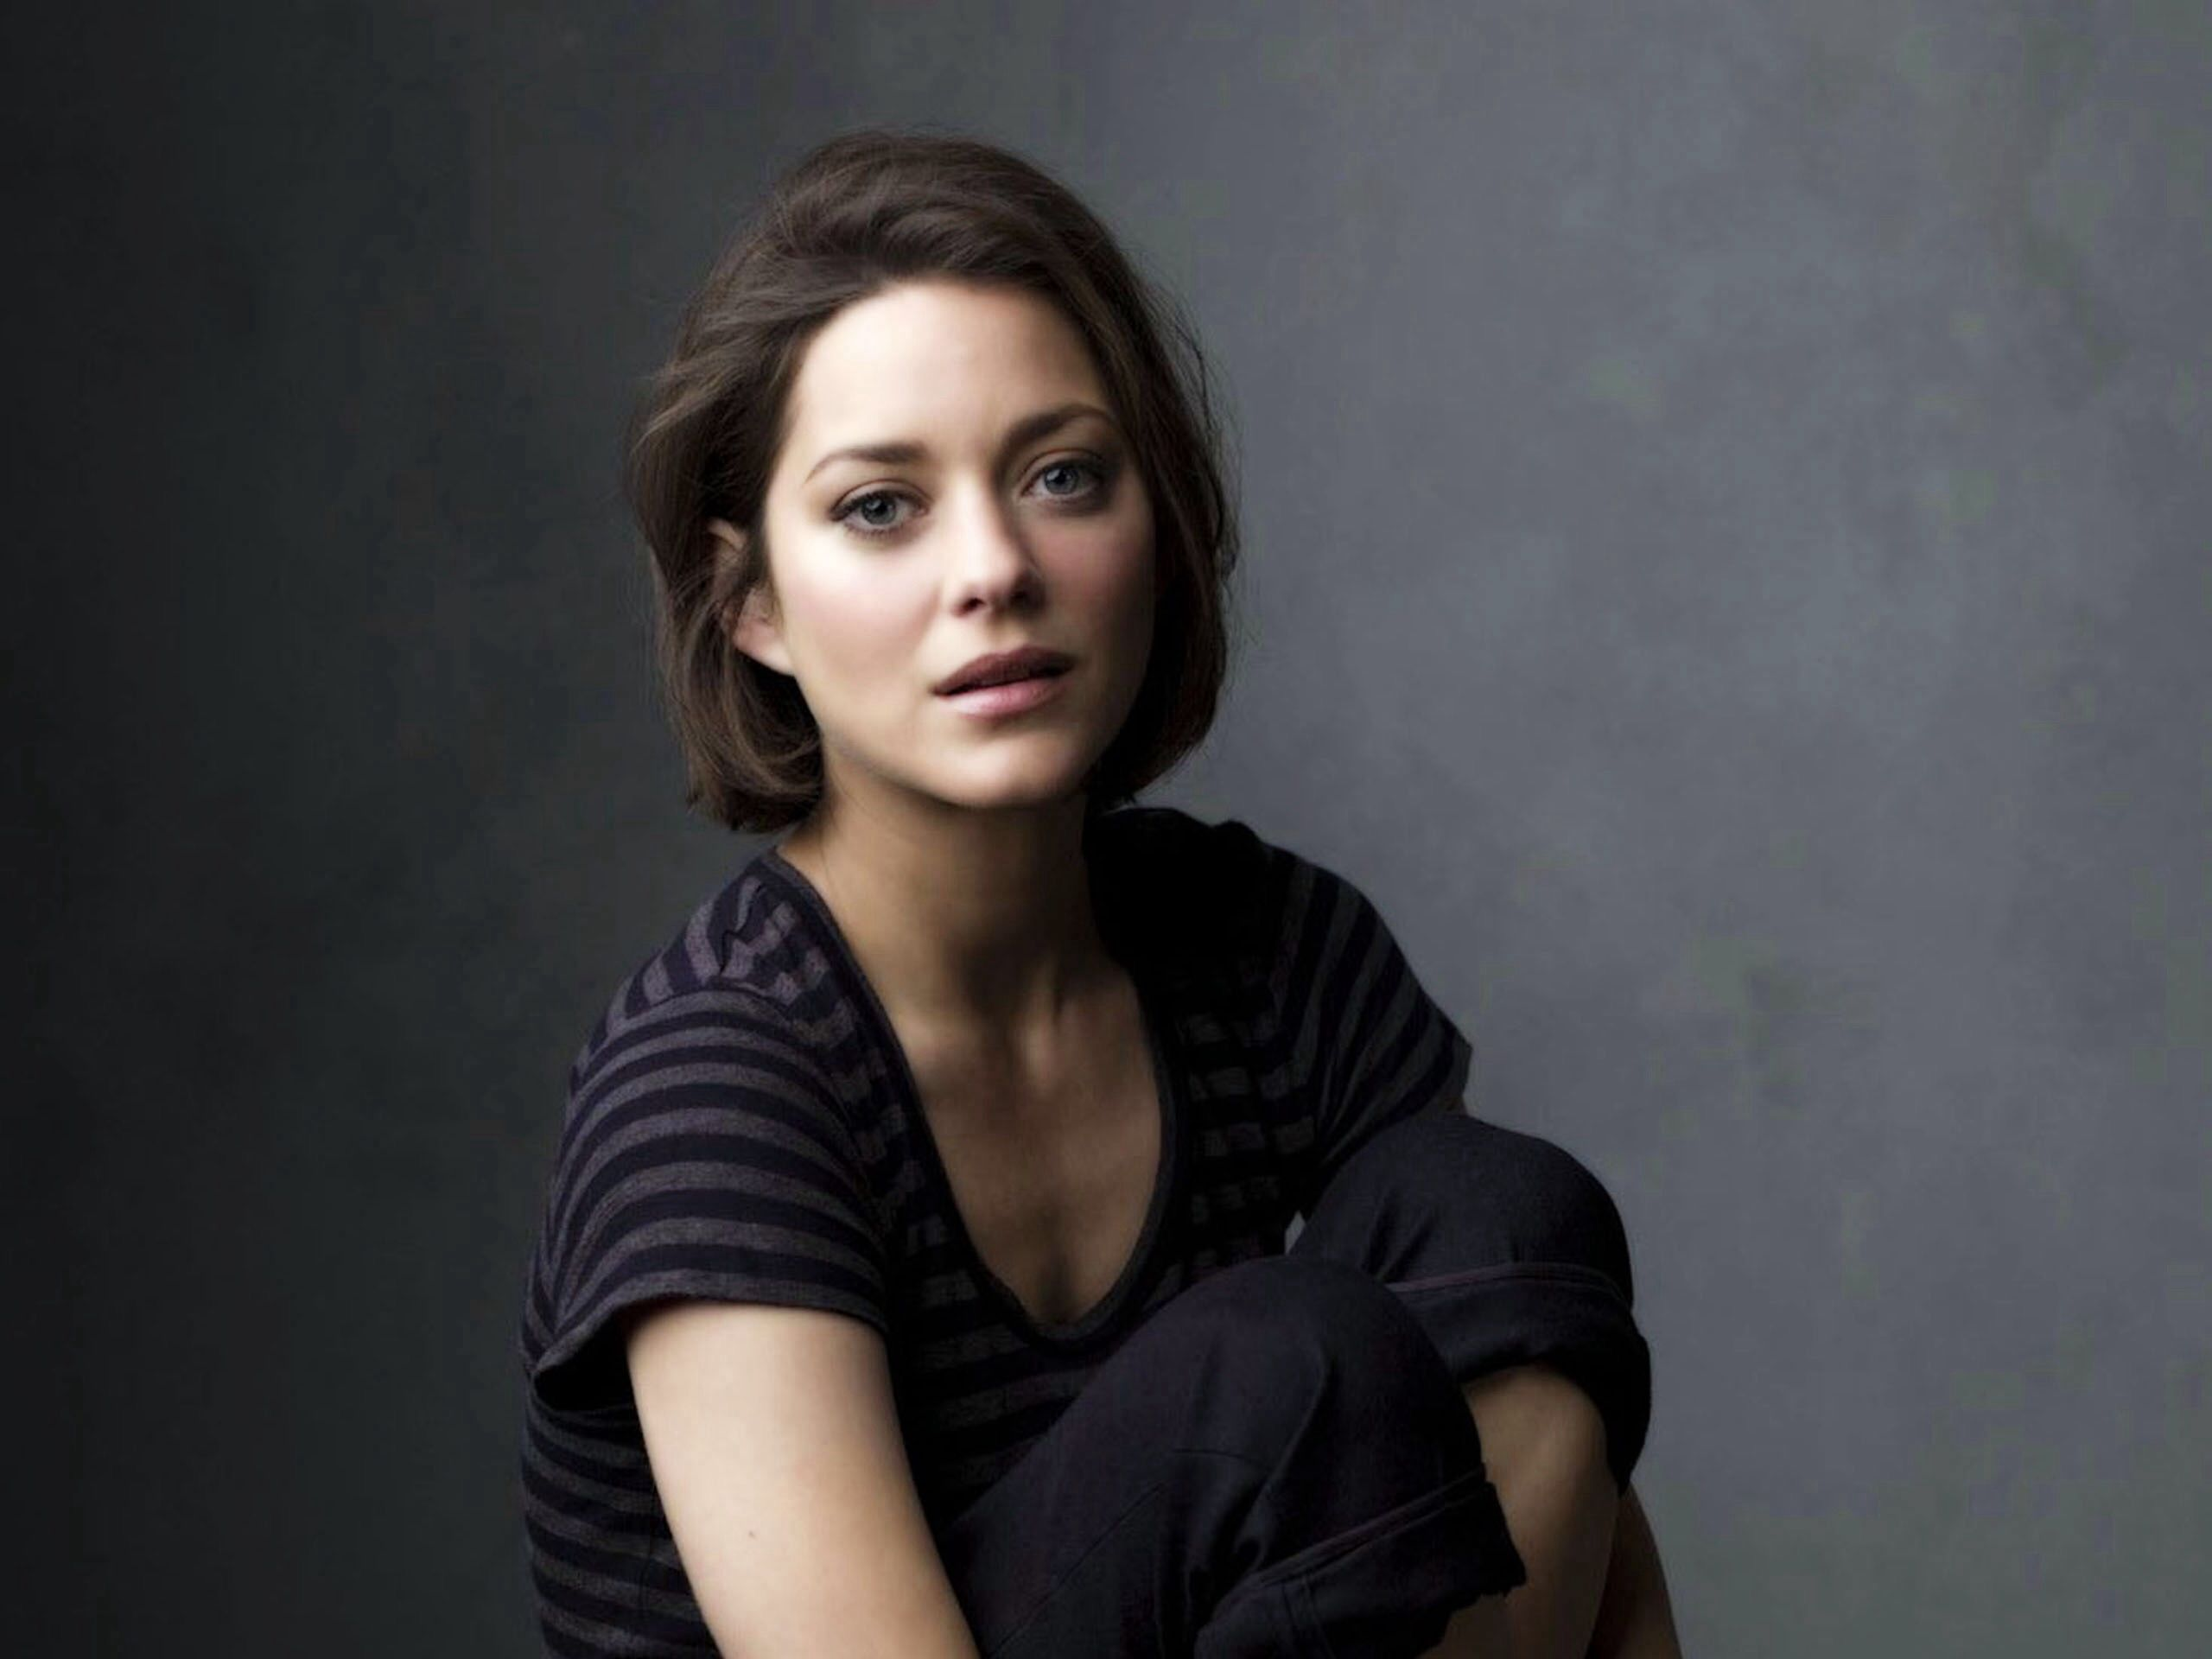 Marion Cotillard is set to play Lady MacBeth opposite Michael Fassbender ...could it get any better than that? Wish it was more romantic a story. ;)